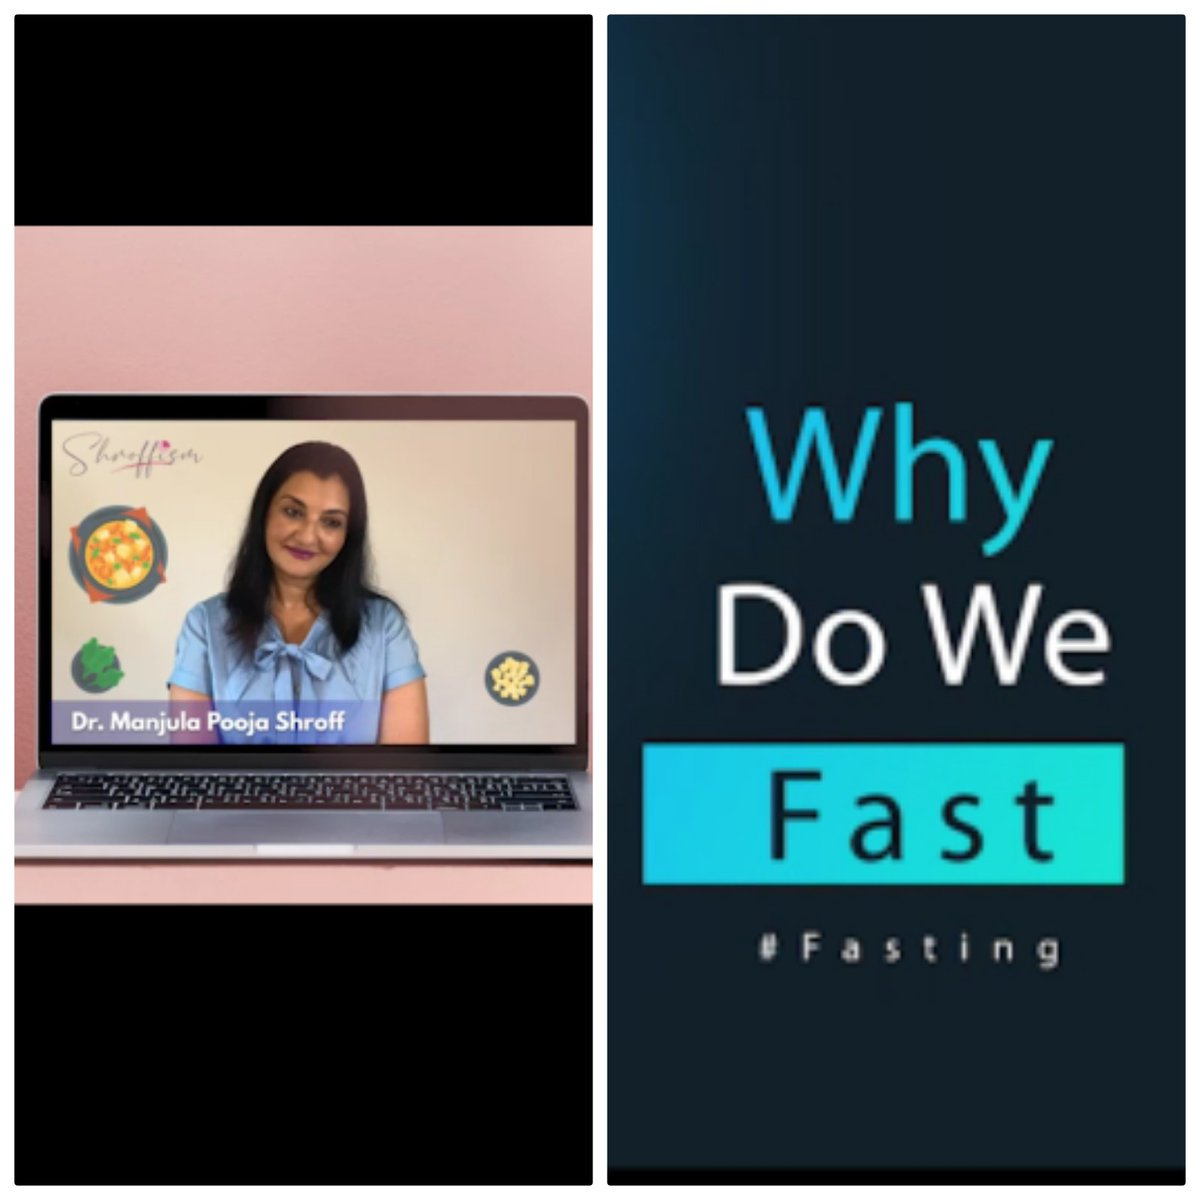 Intermittentfasting is the buzzword surrounding all the health management, weight loss, and fitness regimes. Intermittent fasting is a pattern of eating and fasting alternatively during a period of 24 hours.  https://t.co/BeFYlg7kMT #Intermittentfasting #fasting #MPS #SHROFFism https://t.co/hppVCCCKp8